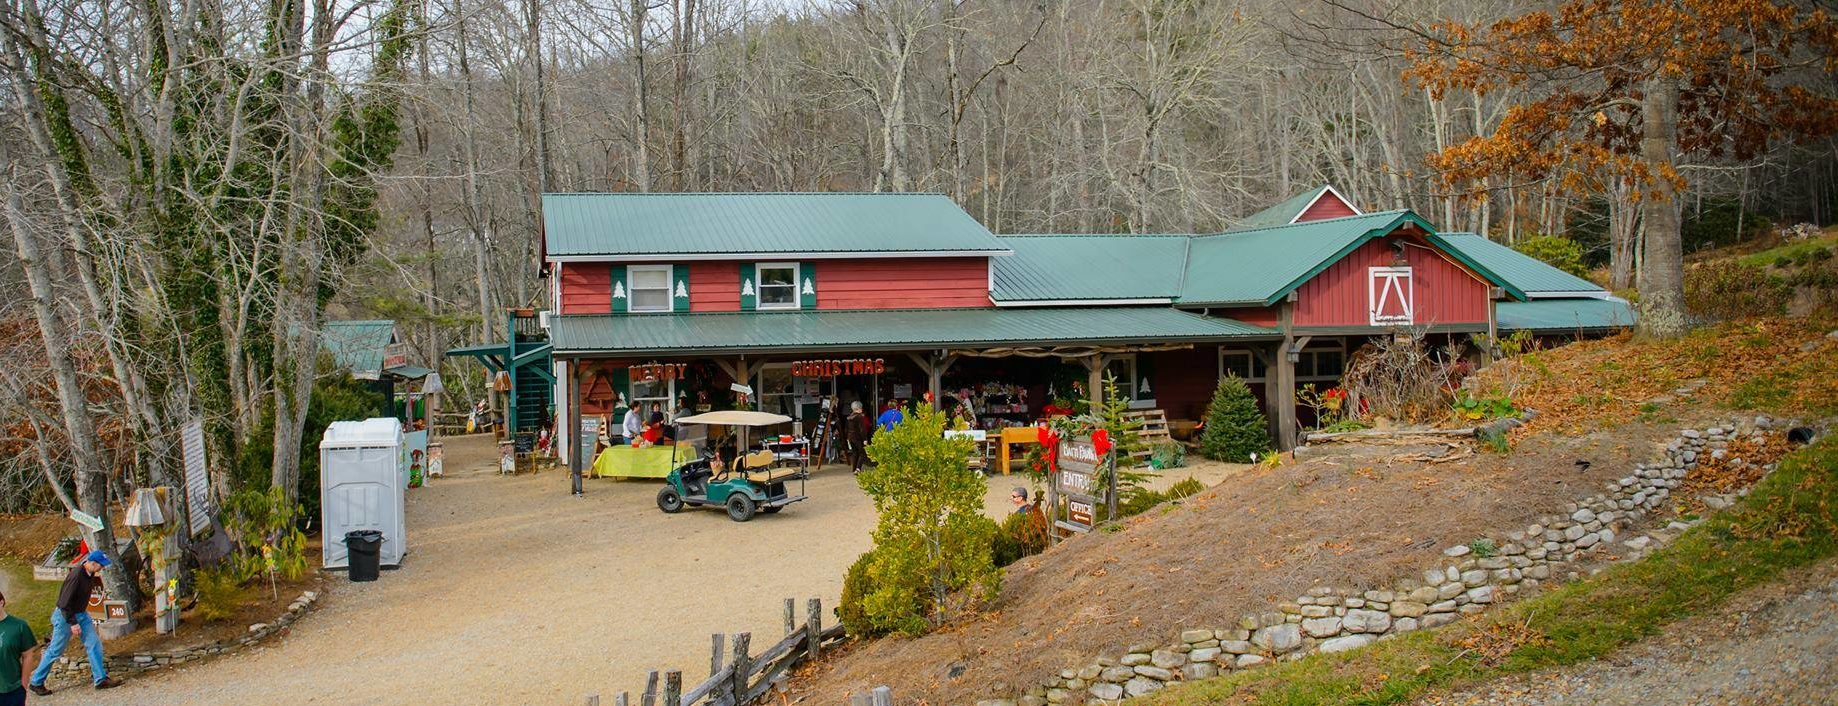 The Christmas store at Tom Sawyer's Christmas Tree Farm and Elf Village.